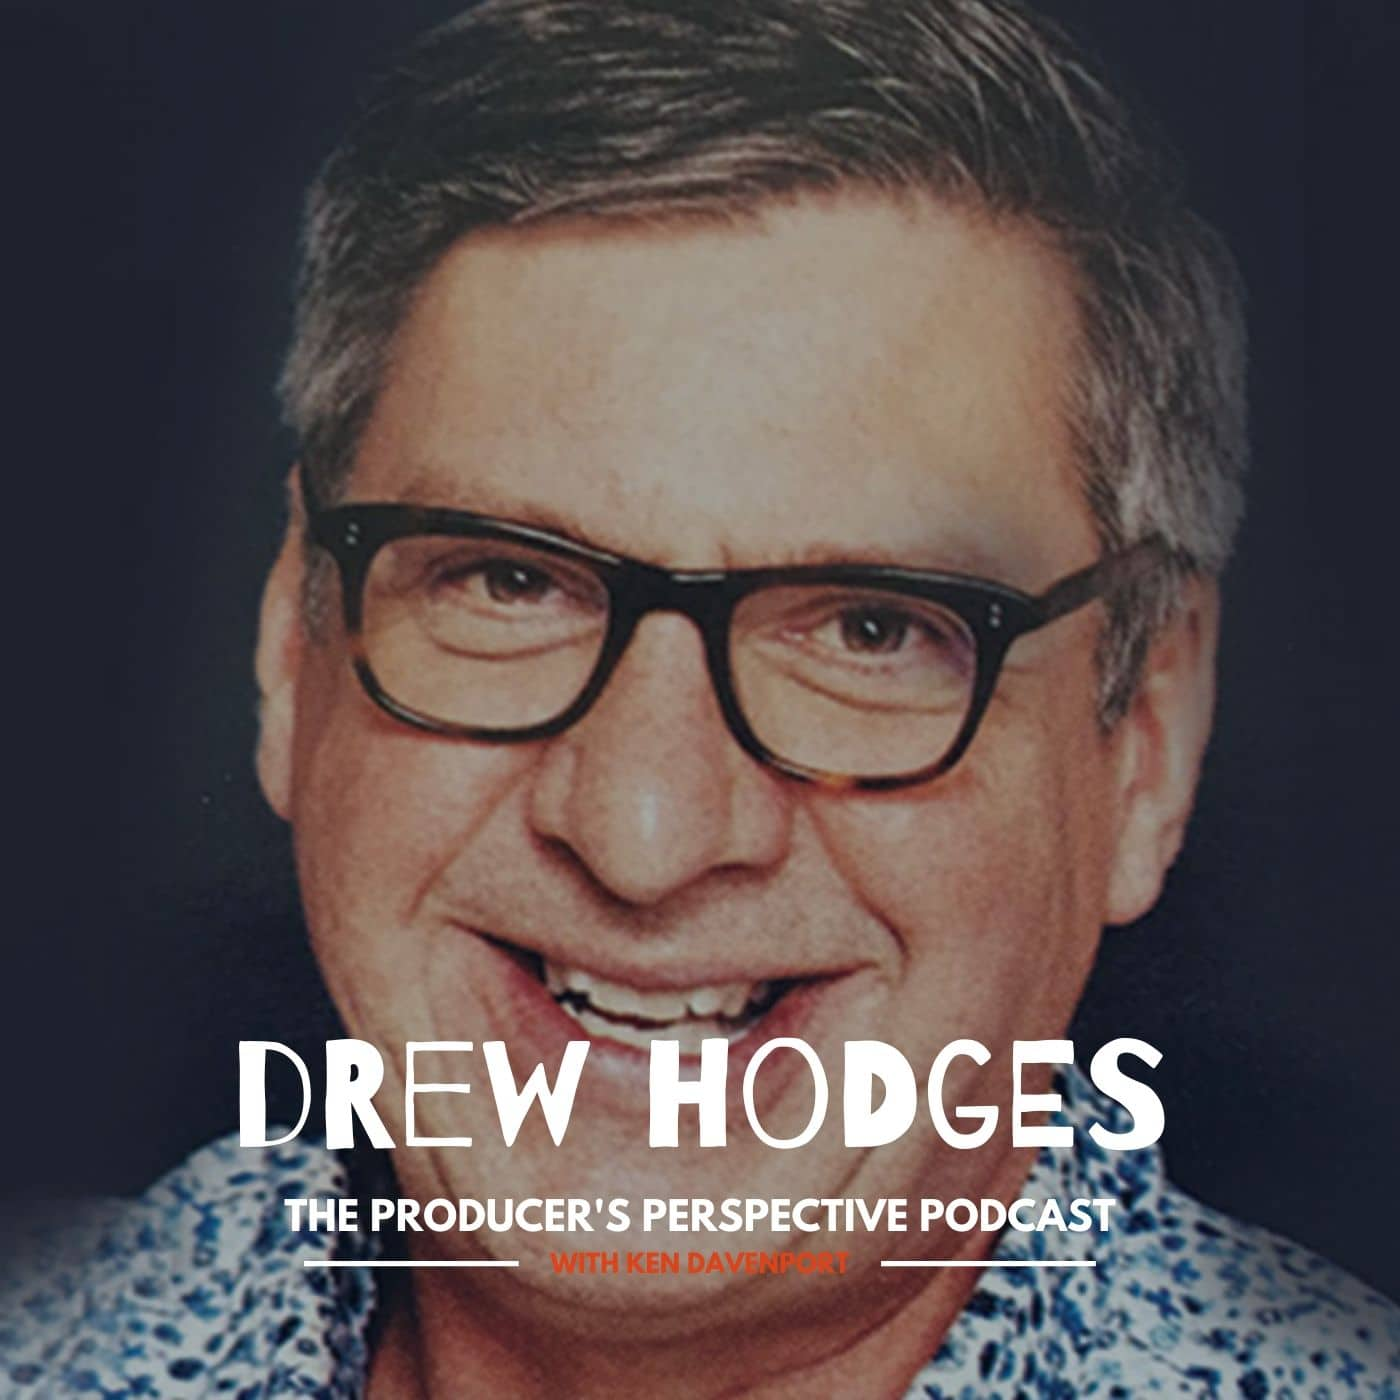 Ken Davenport's The Producer's Perspective Podcast Episode 5 - Drew Hodges